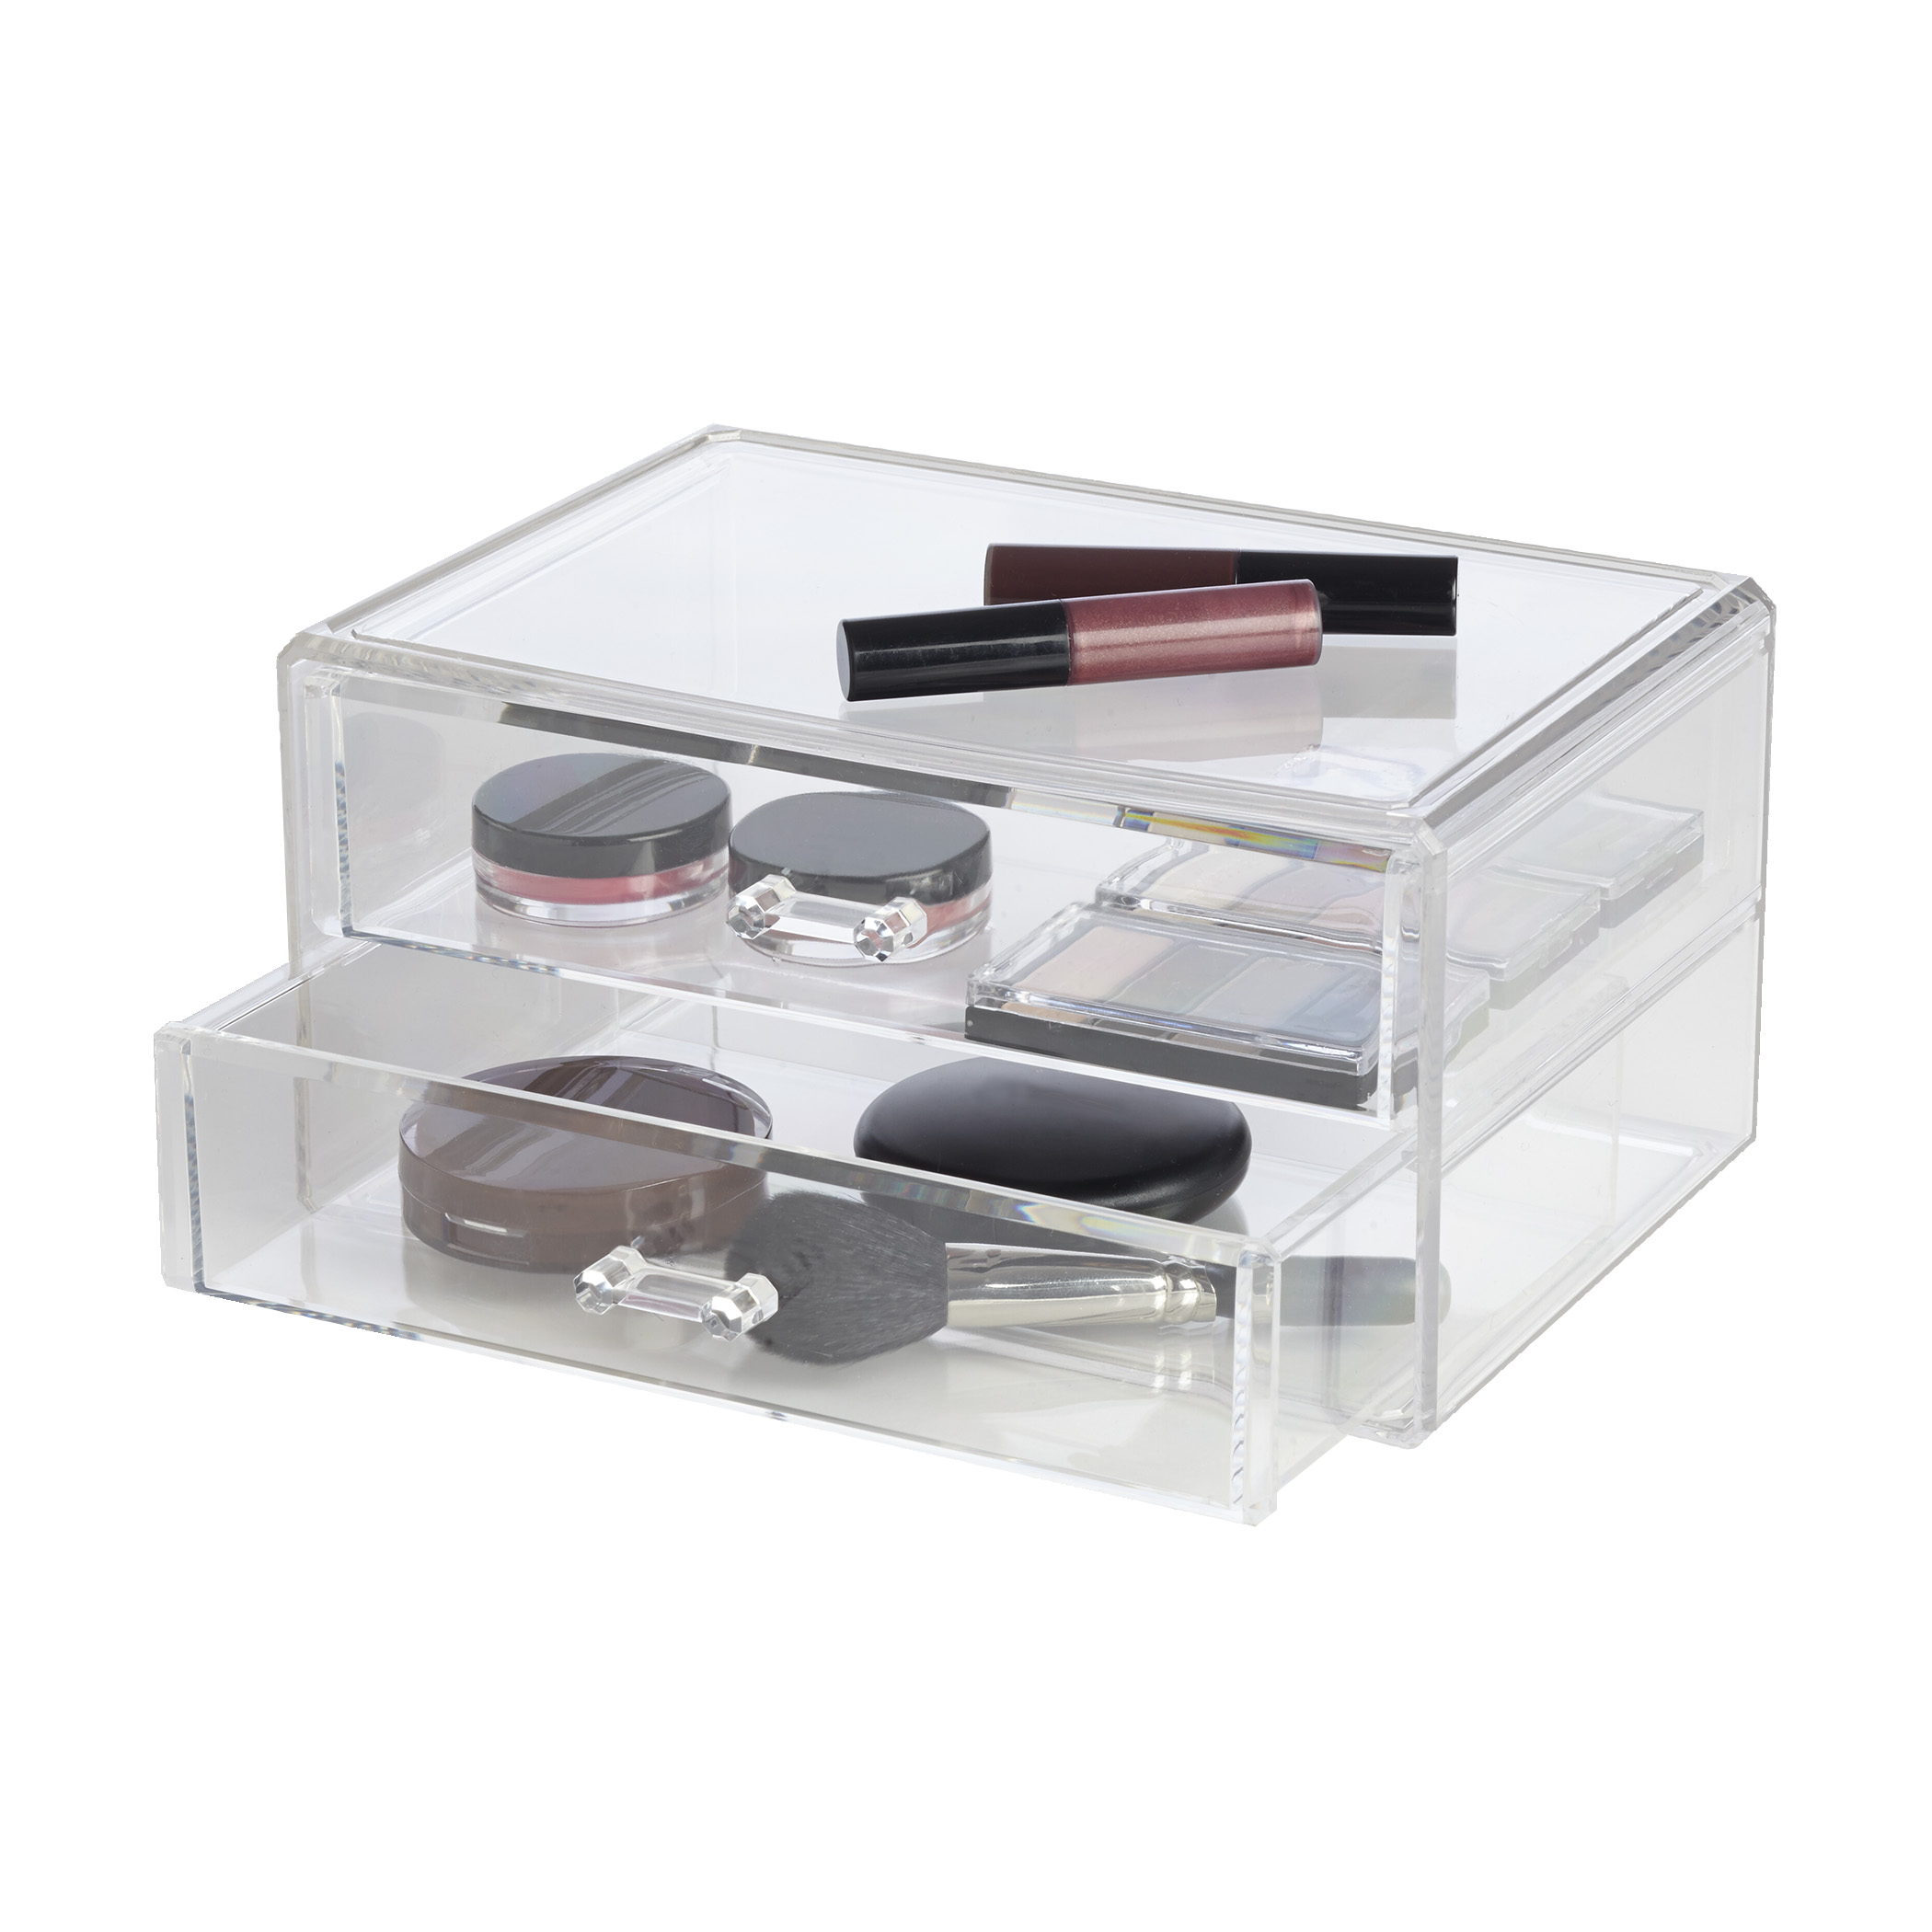 makeup organizer drawers walmart. richards homewares clearly chic 2 drawer large stackable cosmetic organizer - walmart.com makeup drawers walmart